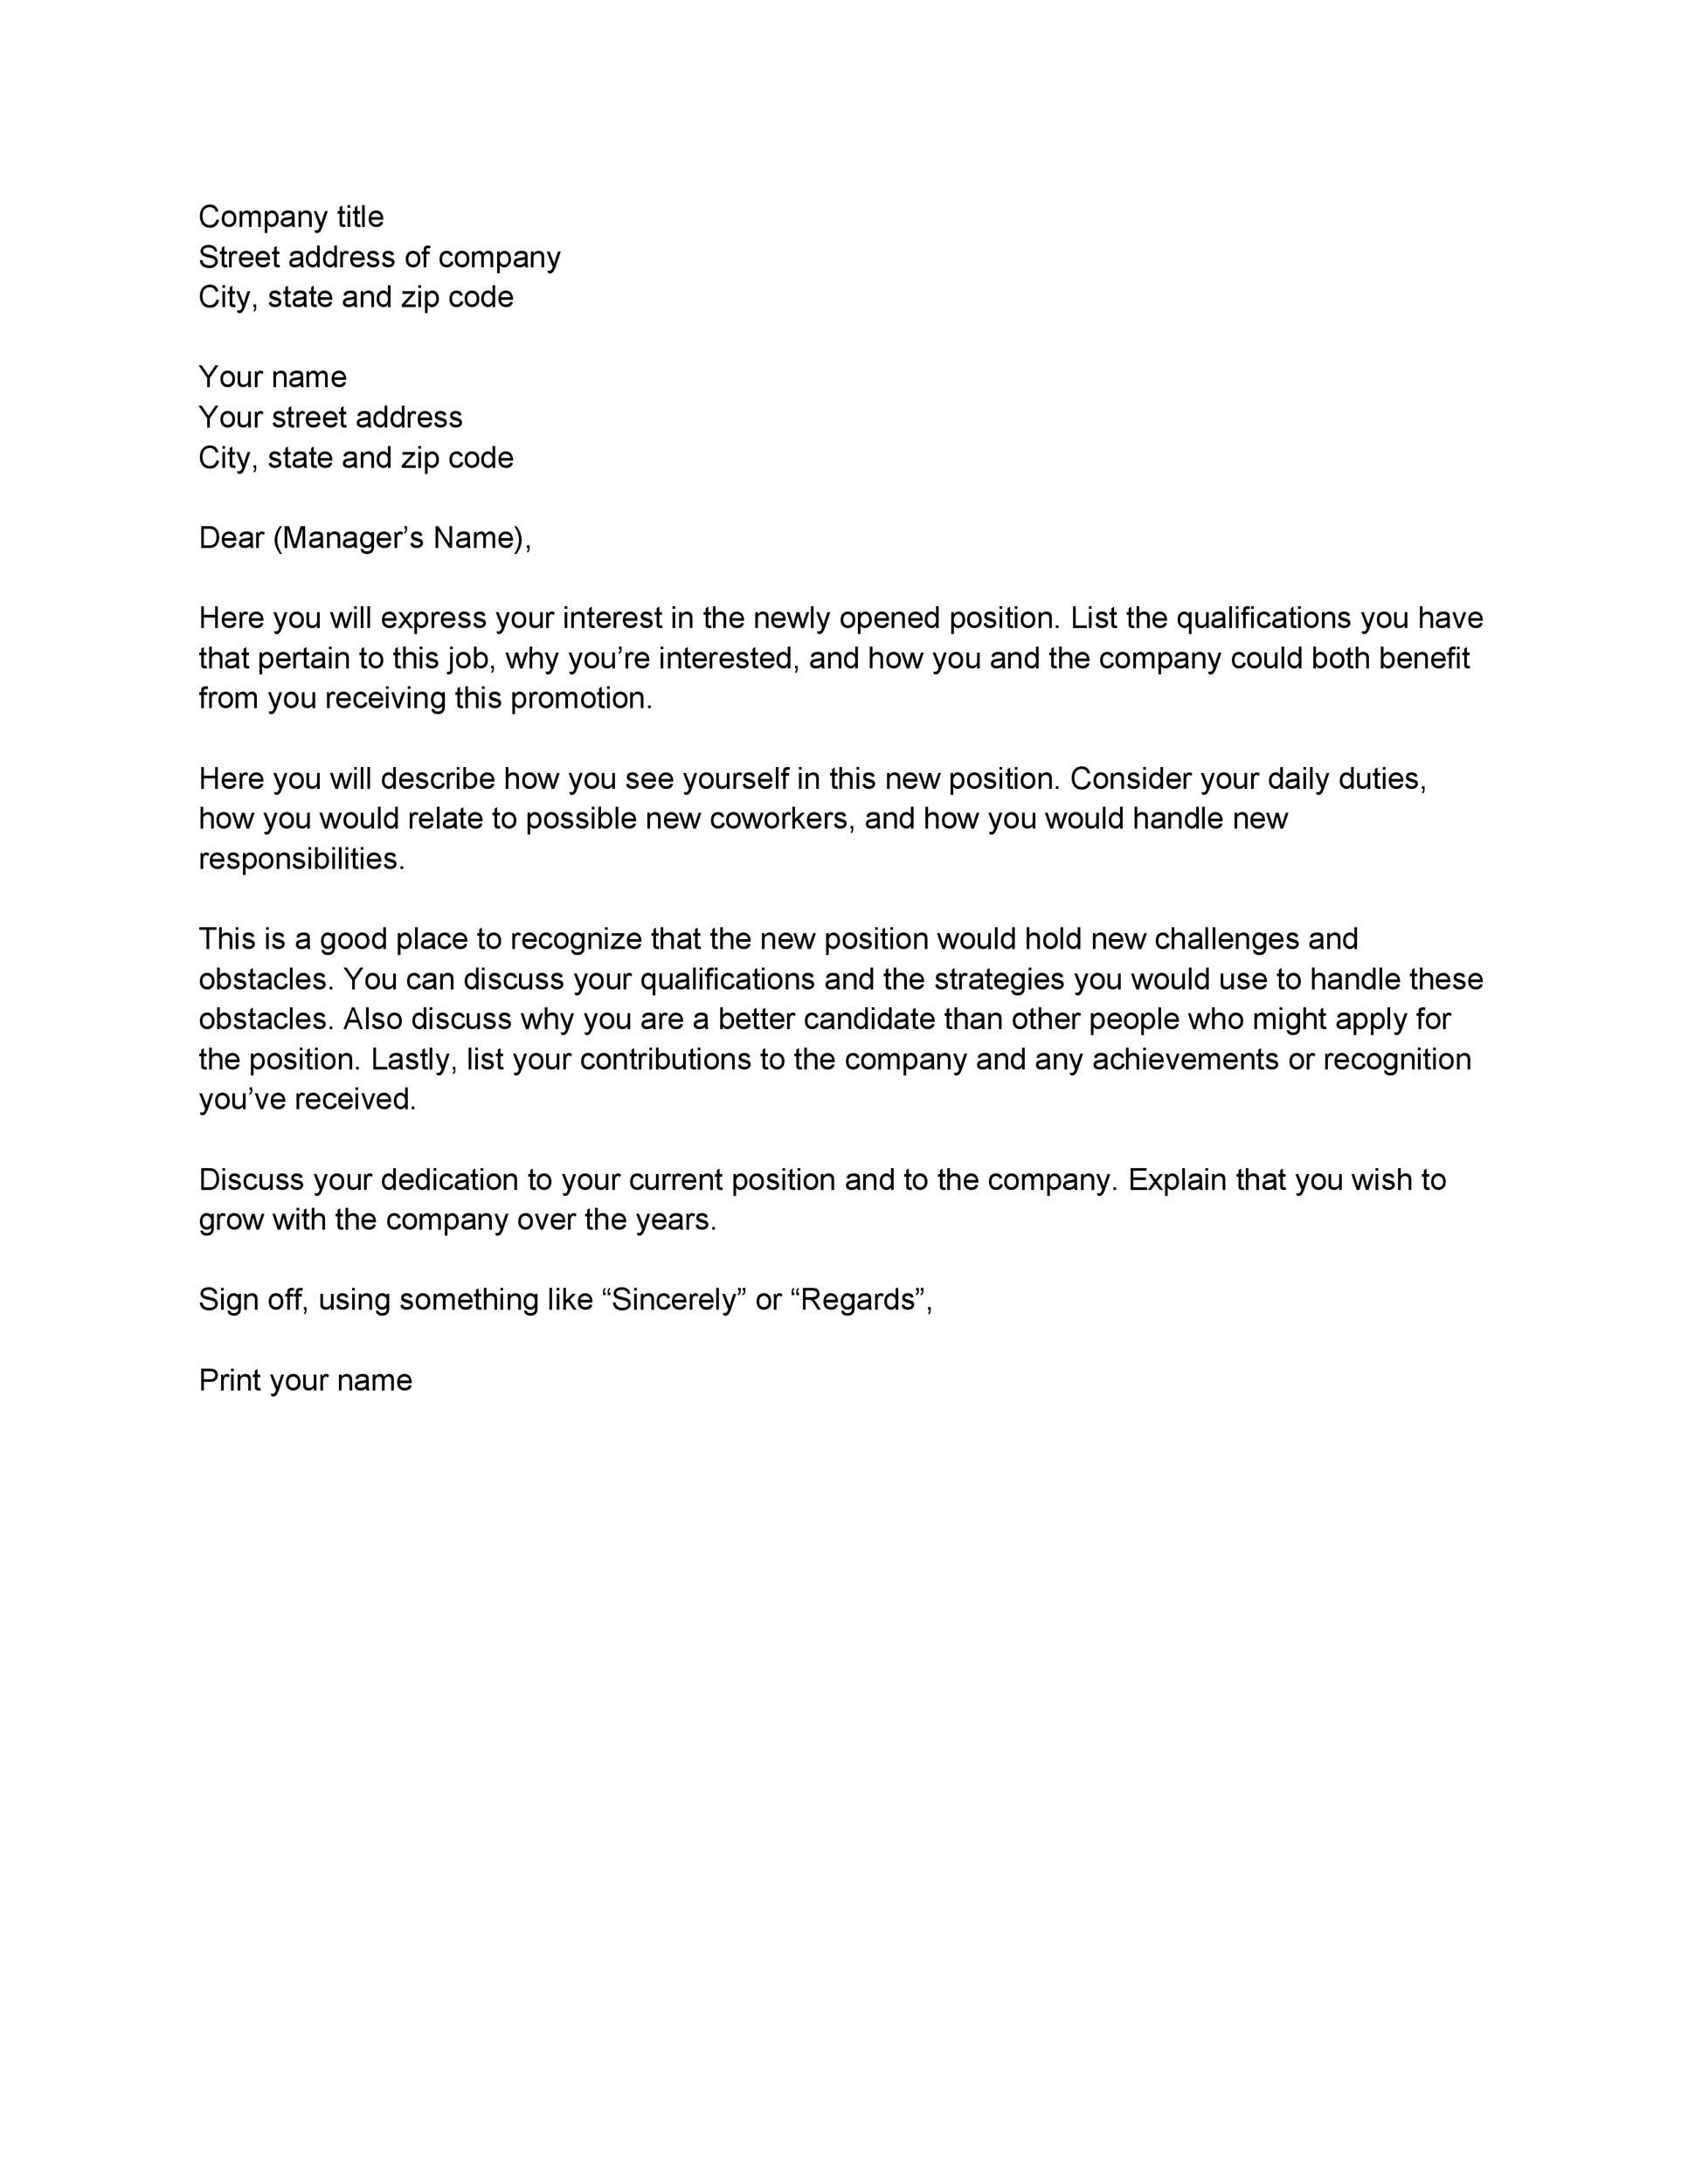 Letter Of Interest For Job  MaggiLocustdesignCo